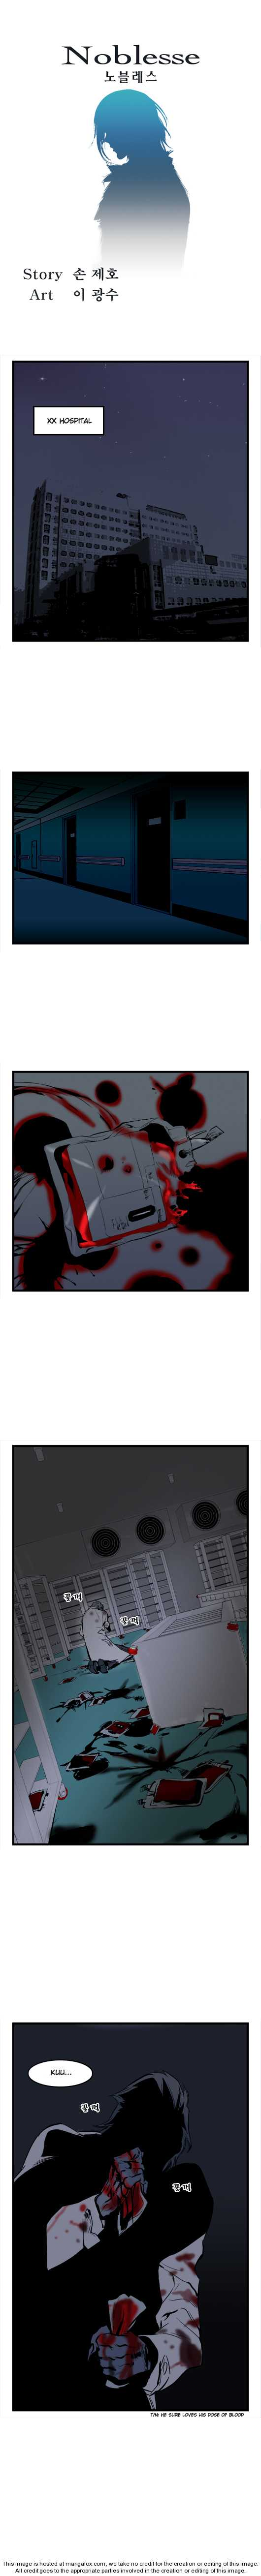 Noblesse 39 Page 1